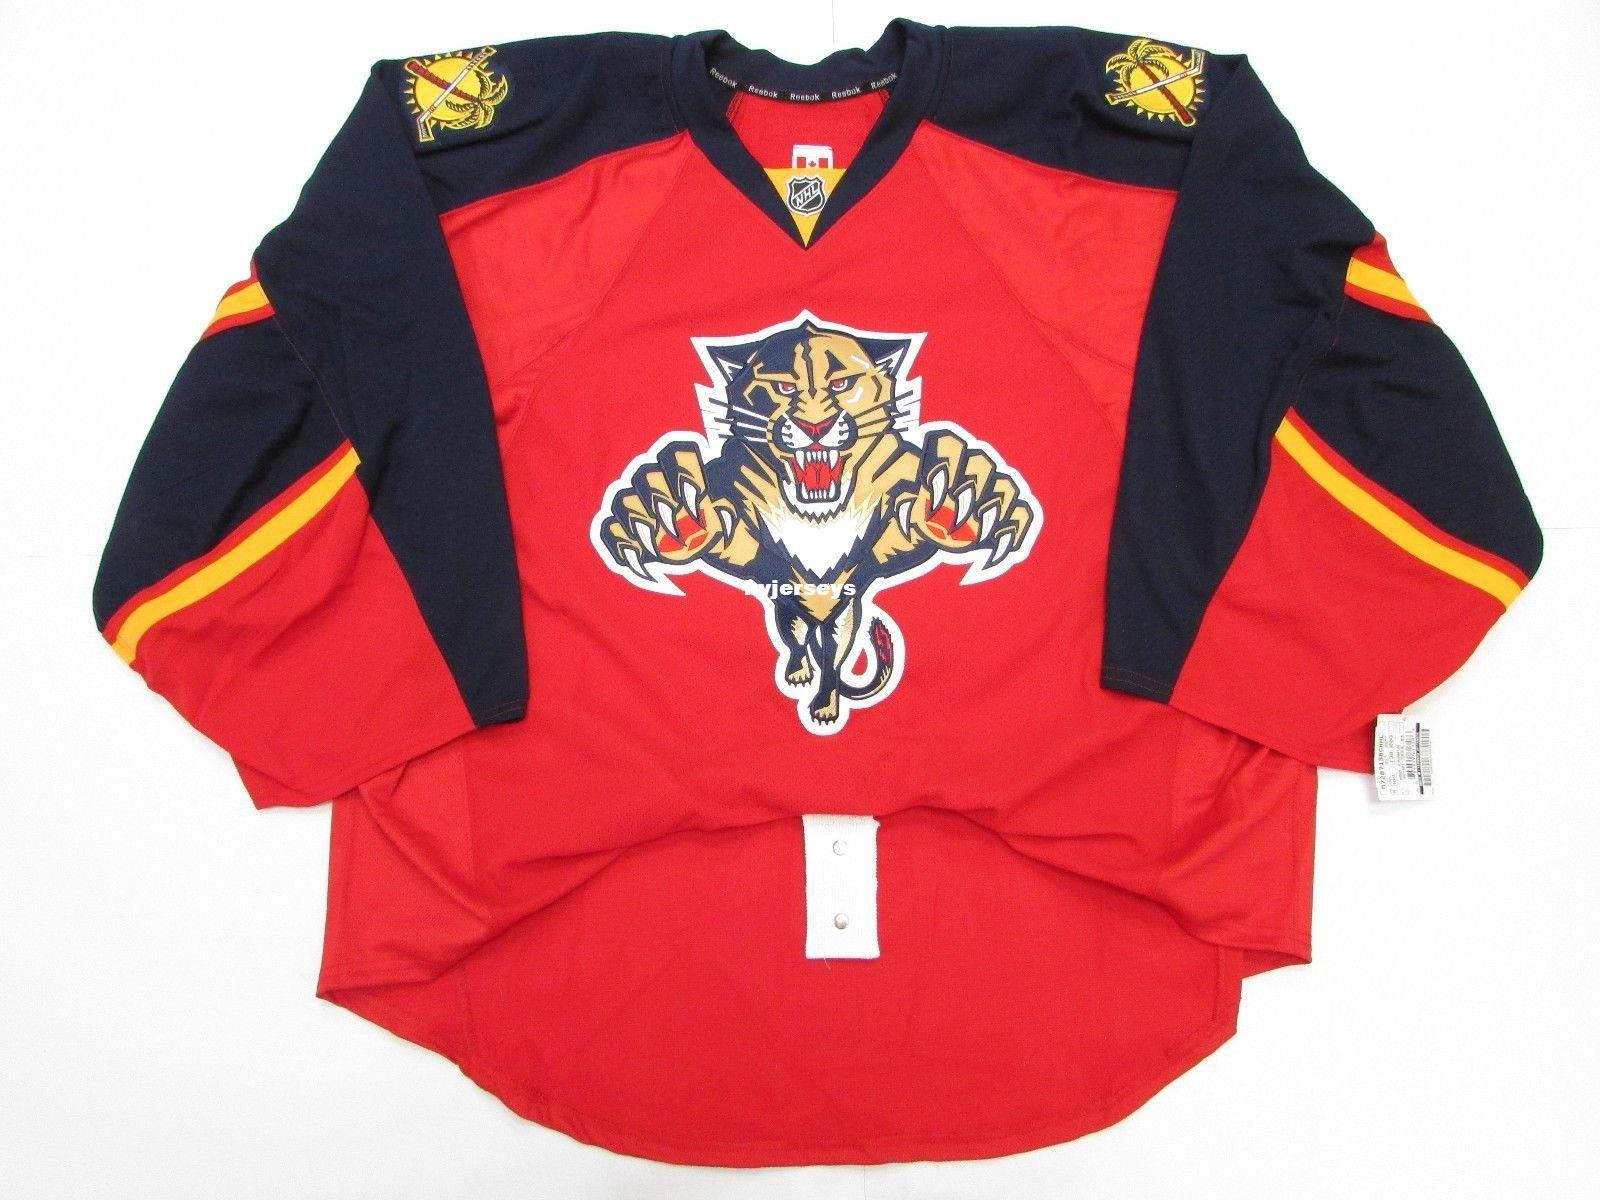 online store 8c735 fb297 Cheap Custom FLORIDA PANTHERS RED HOME TEAM ISSUED EDGE JERSEY GOALIE CUT  Mens Stitched Personalized hockey Jerseys